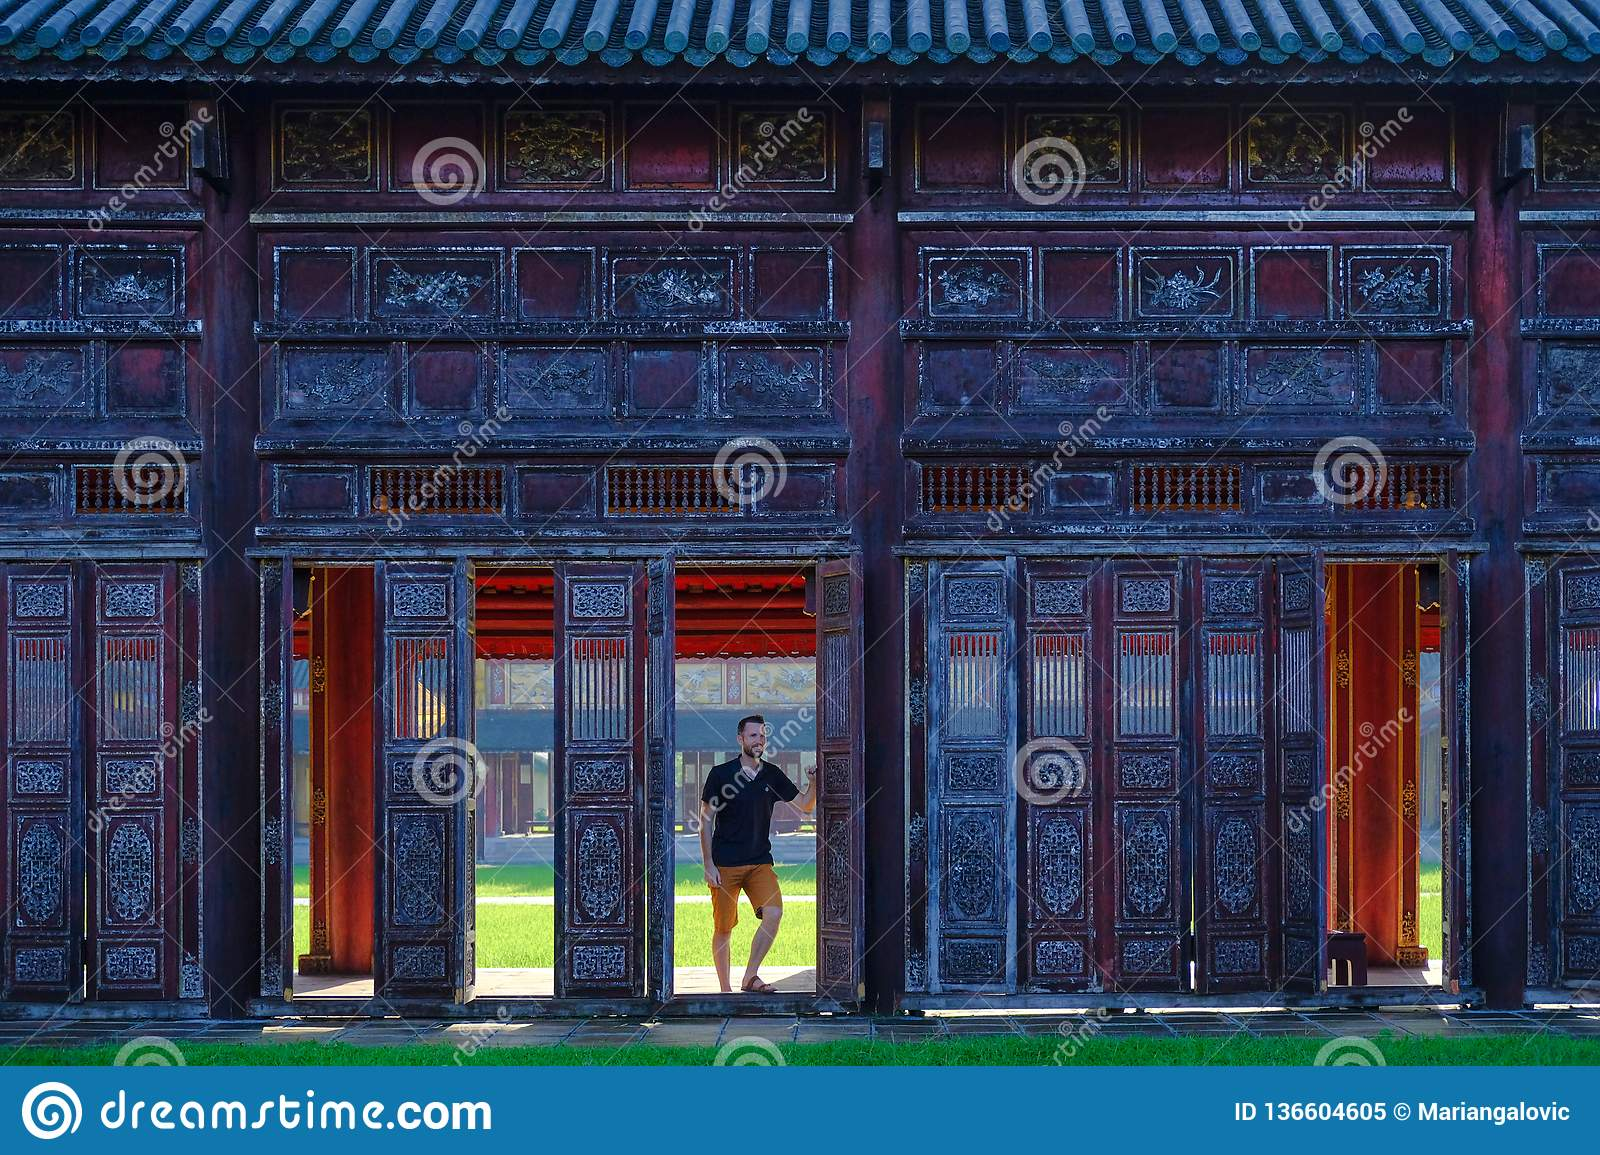 Hue / Vietnam, 17/11/2017: Man standing next to ornamental doors in a traditional pavillion in the Citadel complex in Hue,